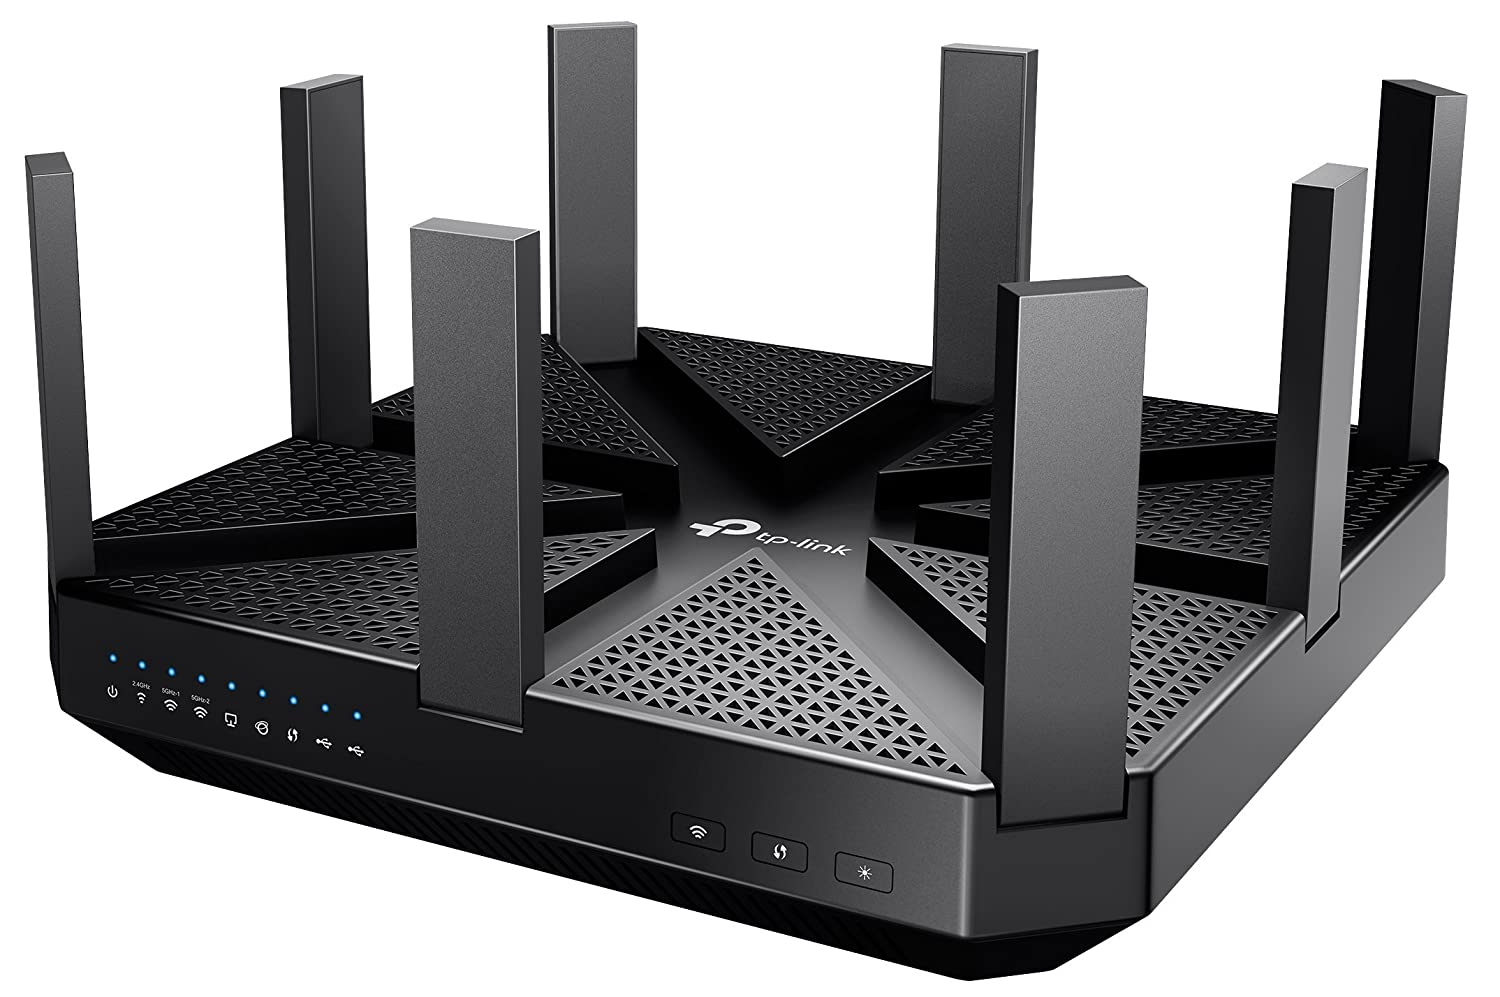 TP-Link AC5400 Archer C5400 - Gaming router Gigabit inalámbrico (Tri-banda 5400 Mbps, CPU doble núcleo, 1024QAM, Smart Connect, Beamforming, USB...